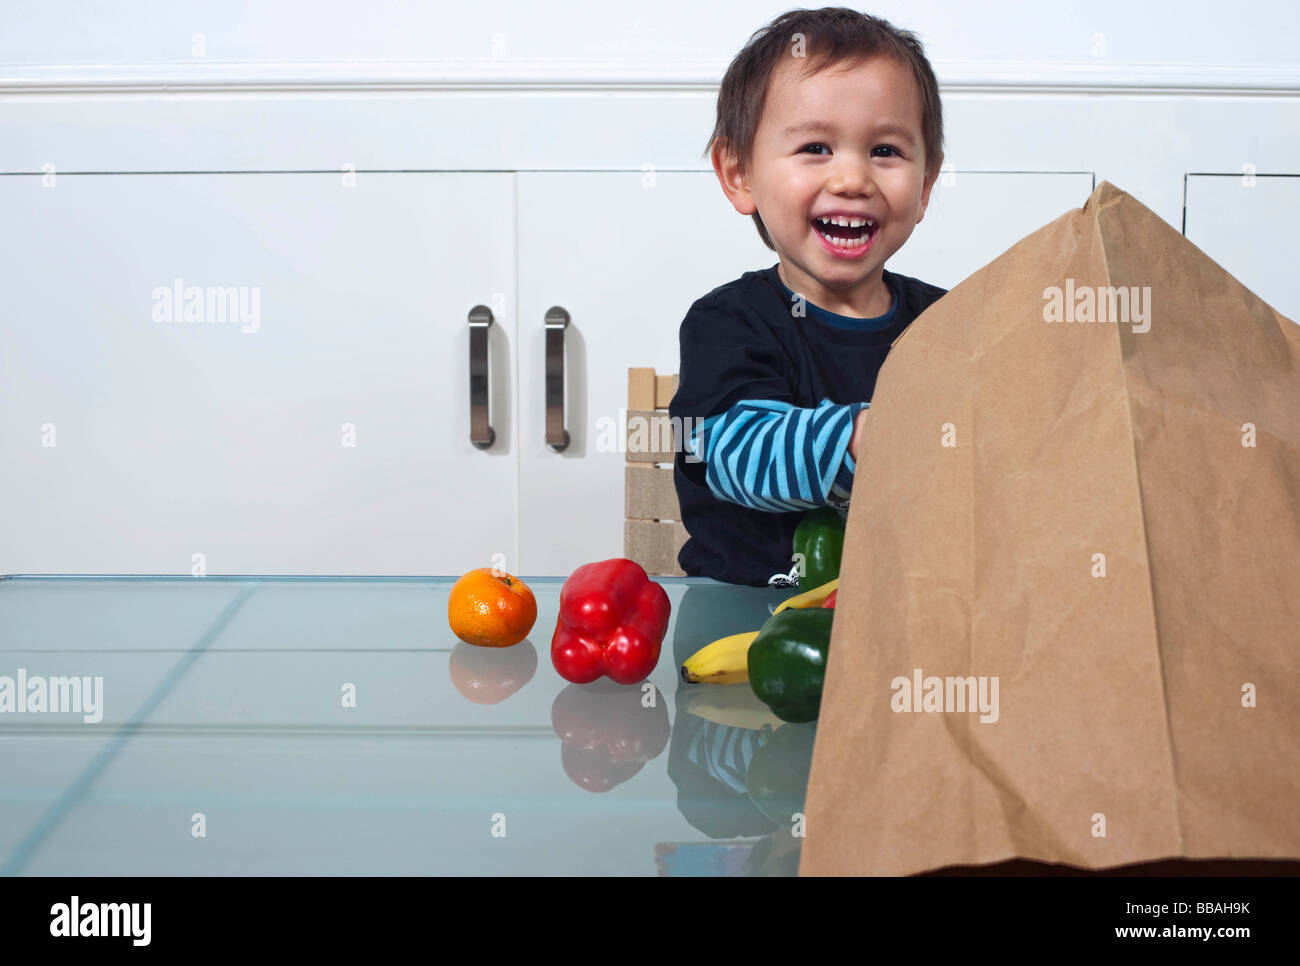 child with bag of groceries - Stock Image